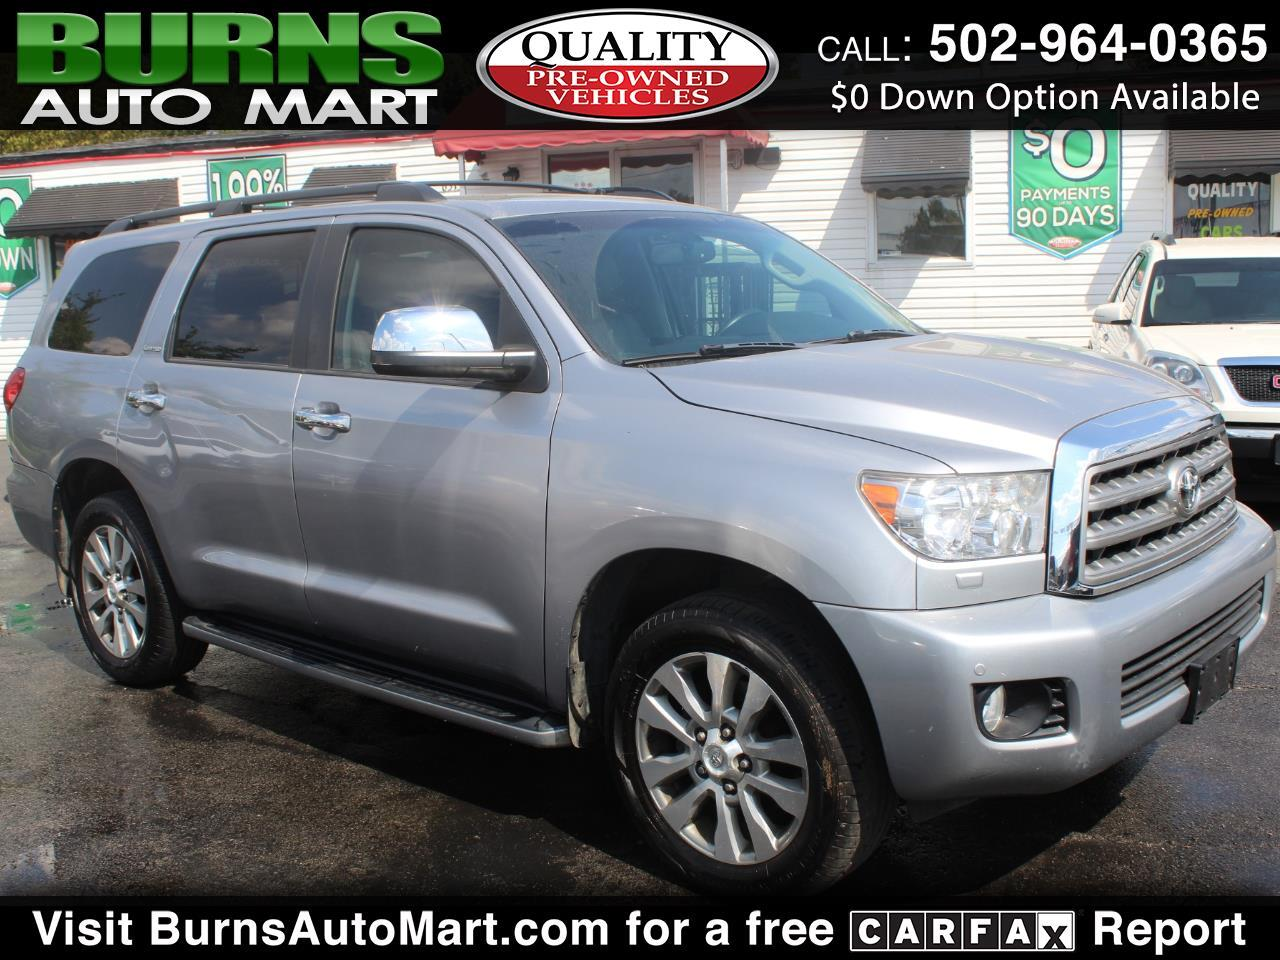 2012 Toyota Sequoia Limited Dvd Navigation Sunroof